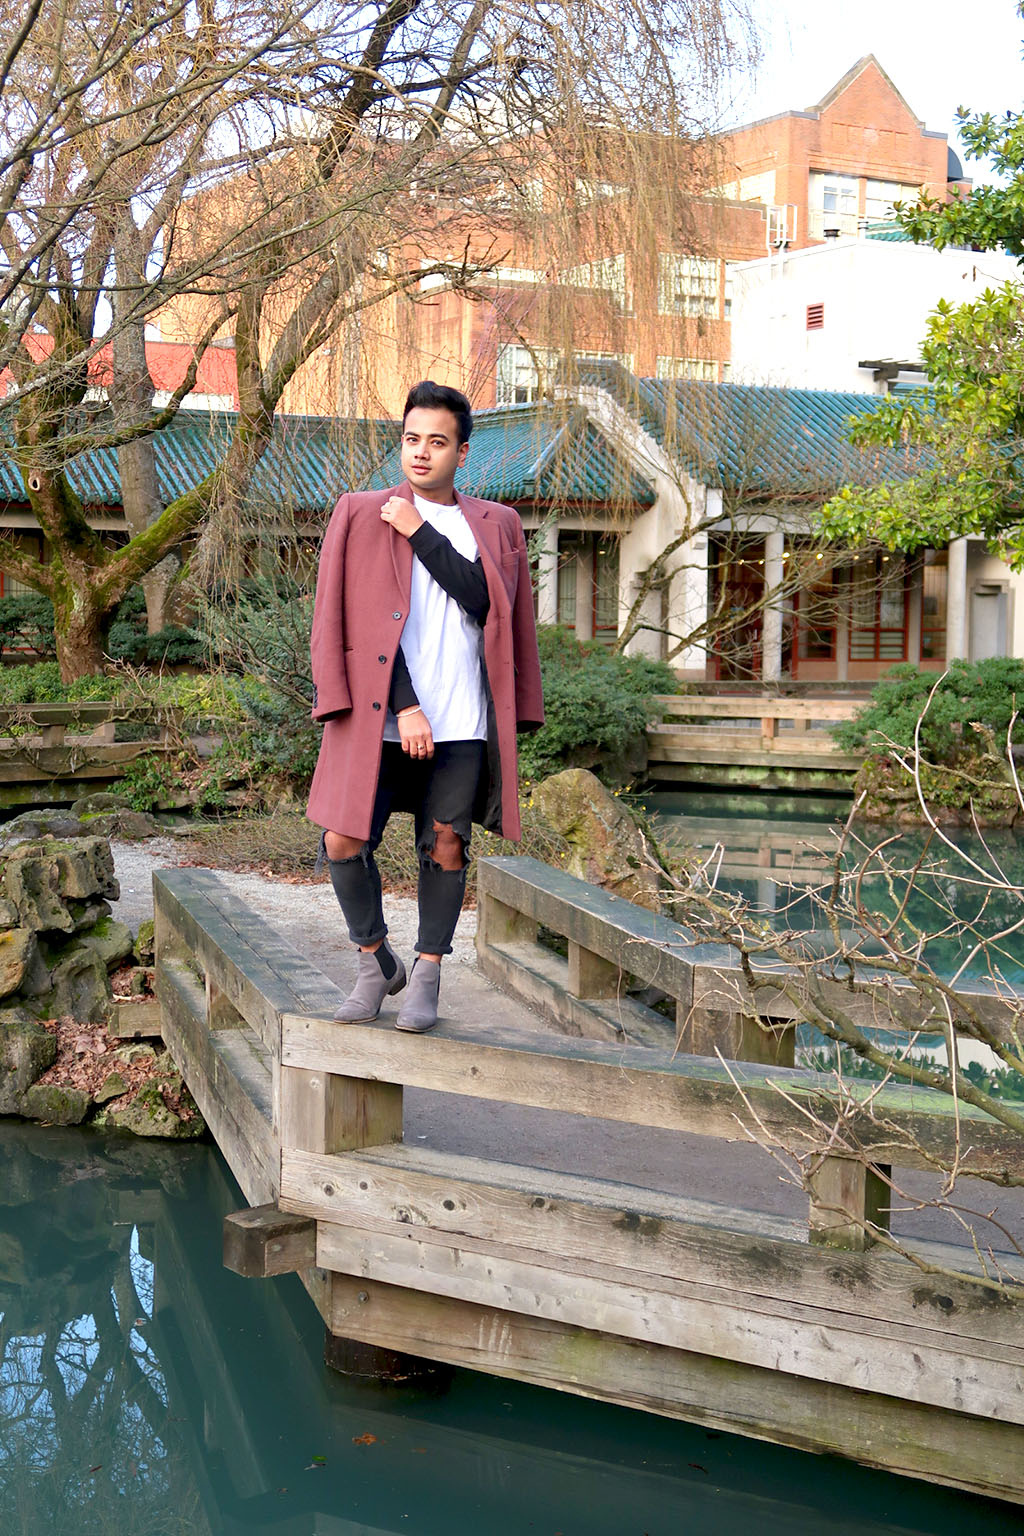 Jonathan Waiching Ho_Travel To Vancouver_Visit China Town Vancouver_Mens Fashion_Style Influencer_4